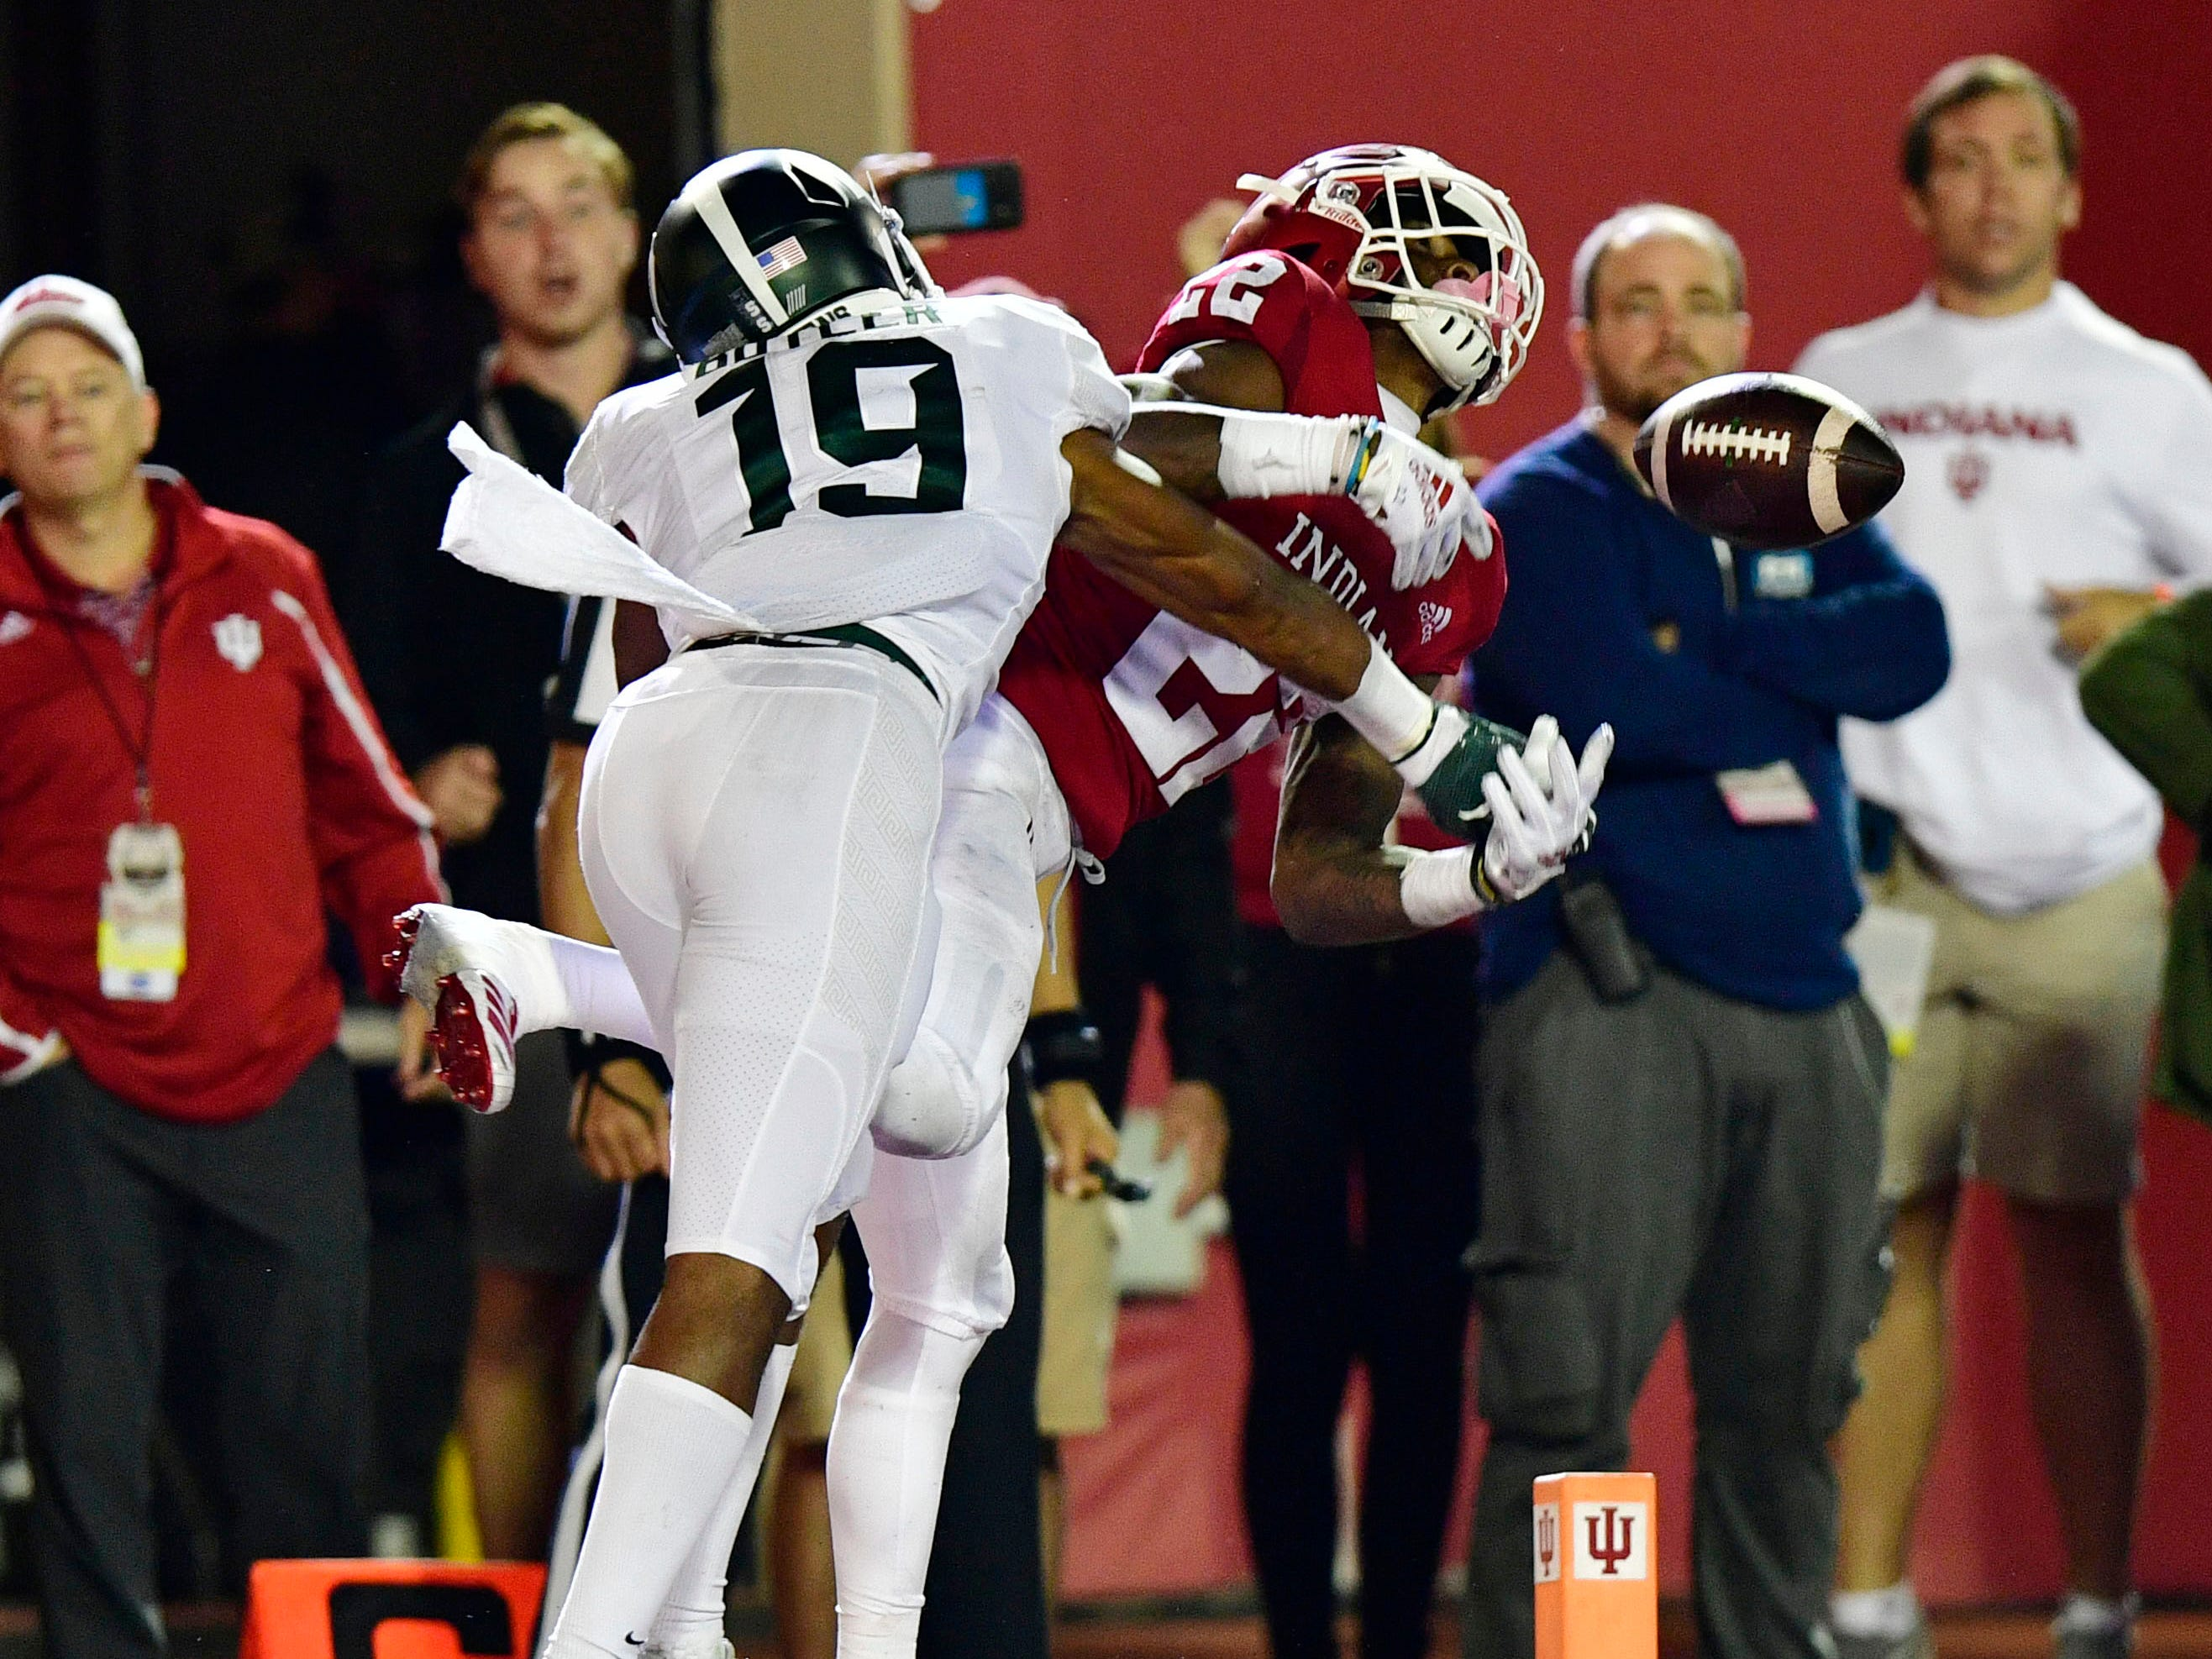 Indiana Hoosiers wide receiver Whop Philyor (22) misses a pass under coverage from Michigan State Spartans cornerback Josh Butler (19) during the second half of the game at Memorial Stadium. The Michigan State Spartans defeated the Indiana Hoosiers 35 to 21.